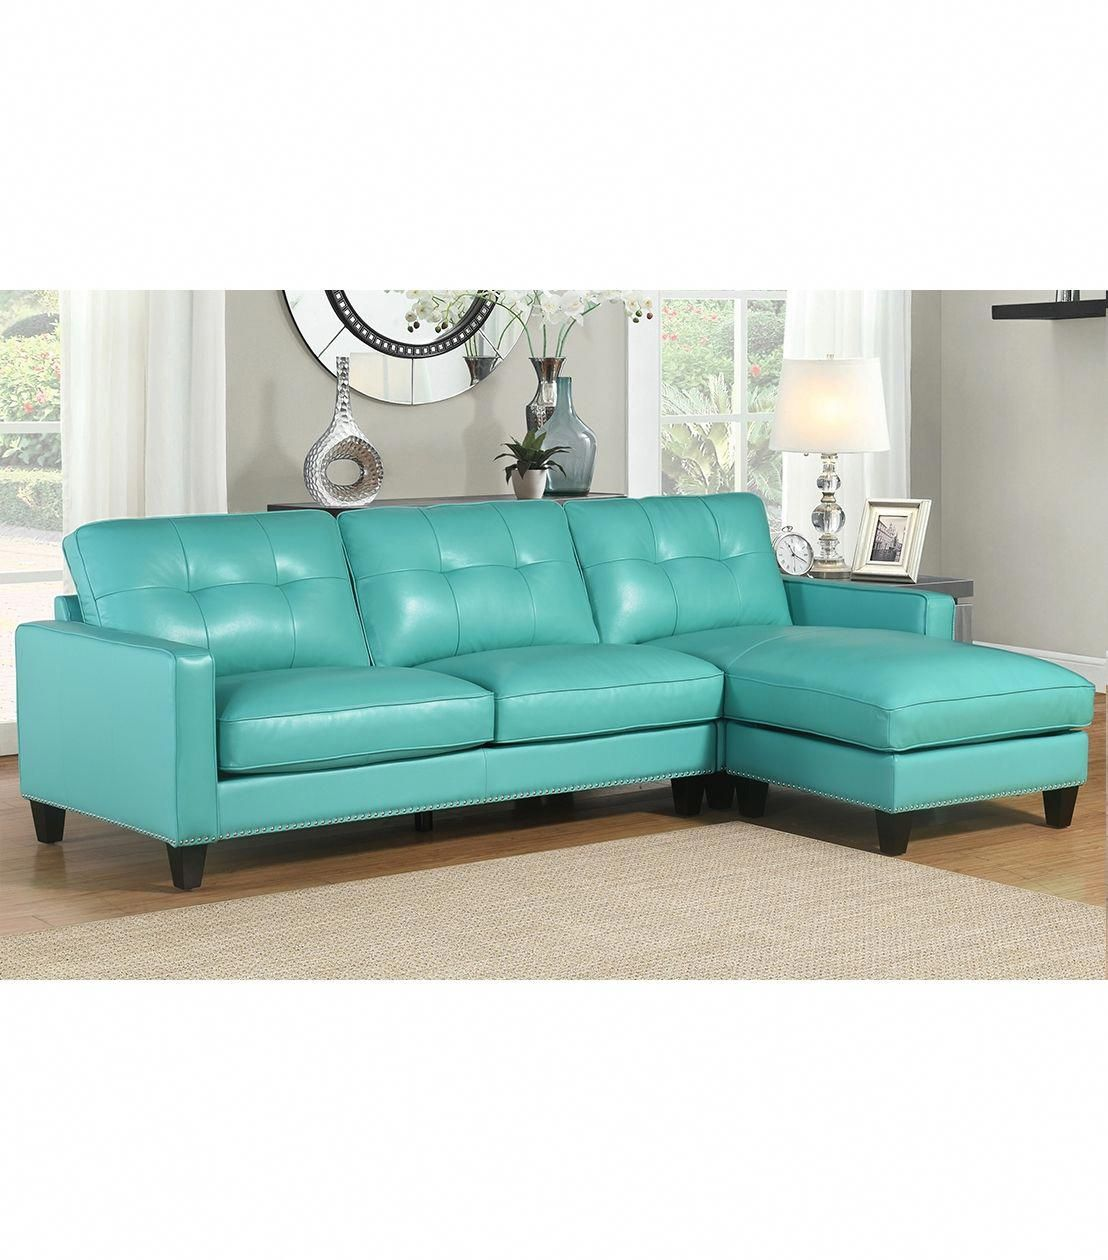 Best Aqua Leather Sectional Sofa Countryfurniture Country 400 x 300